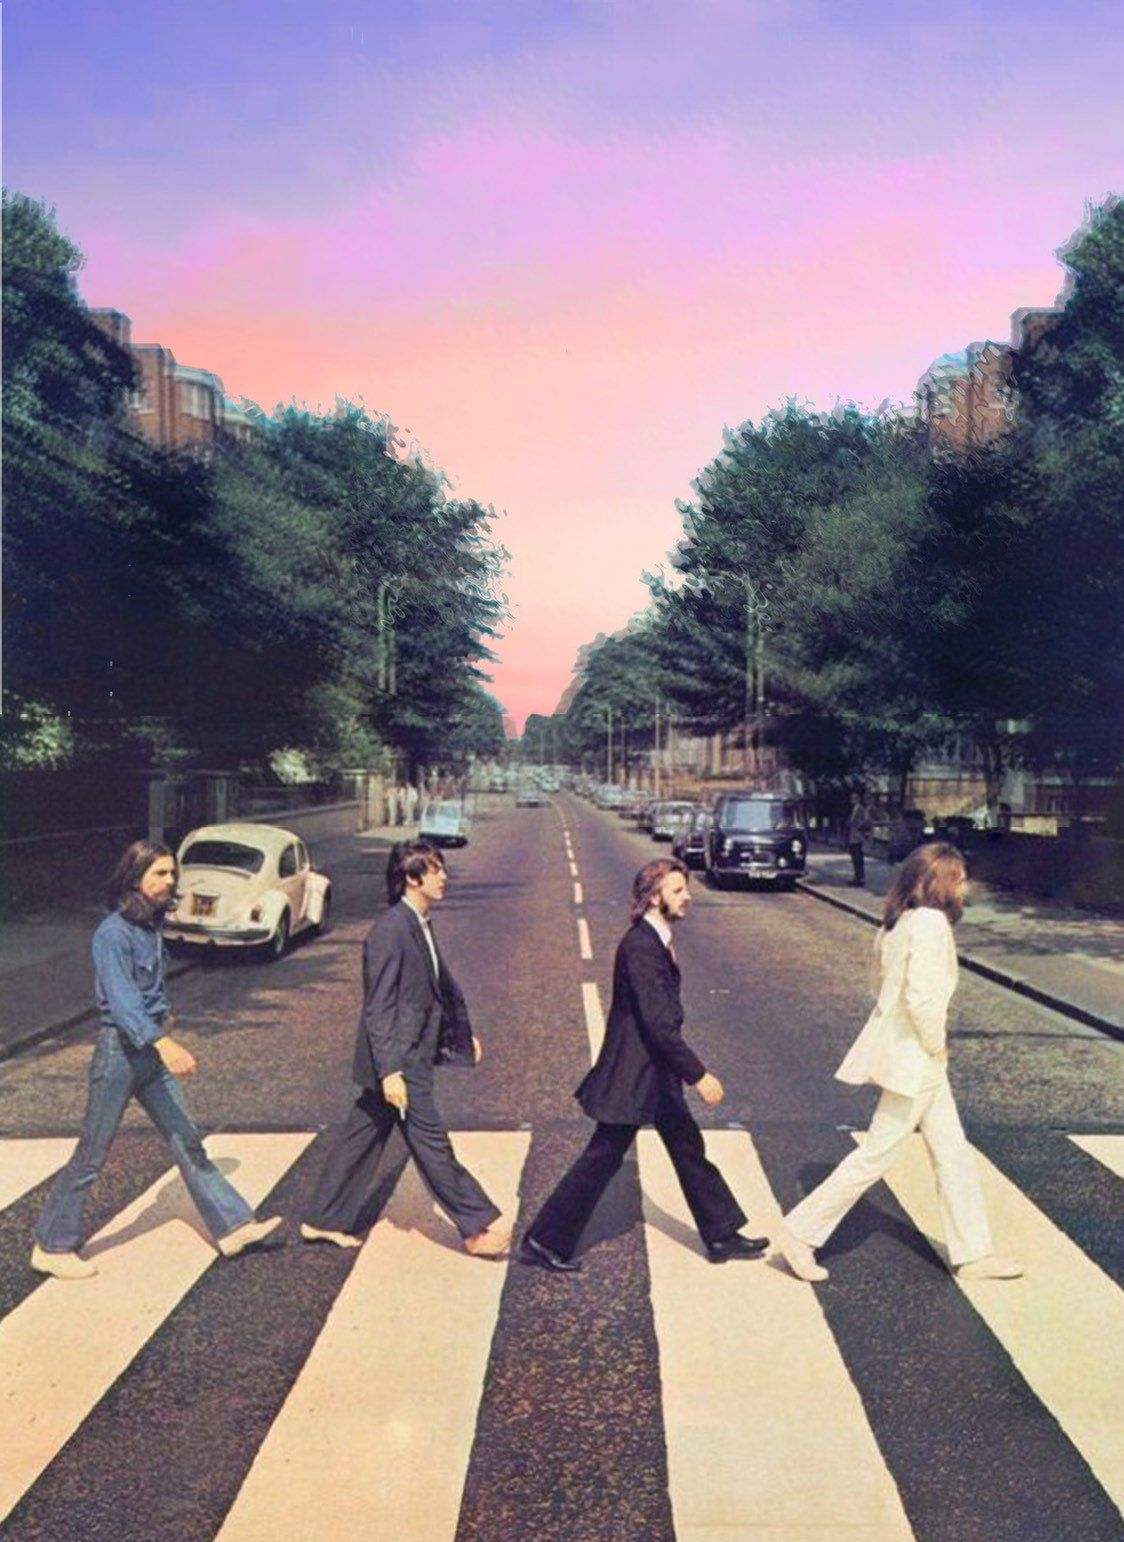 The Beatles Abbey Road Art Print Poster Beatles Wallpaper Beatles Poster Picture Collage Wall